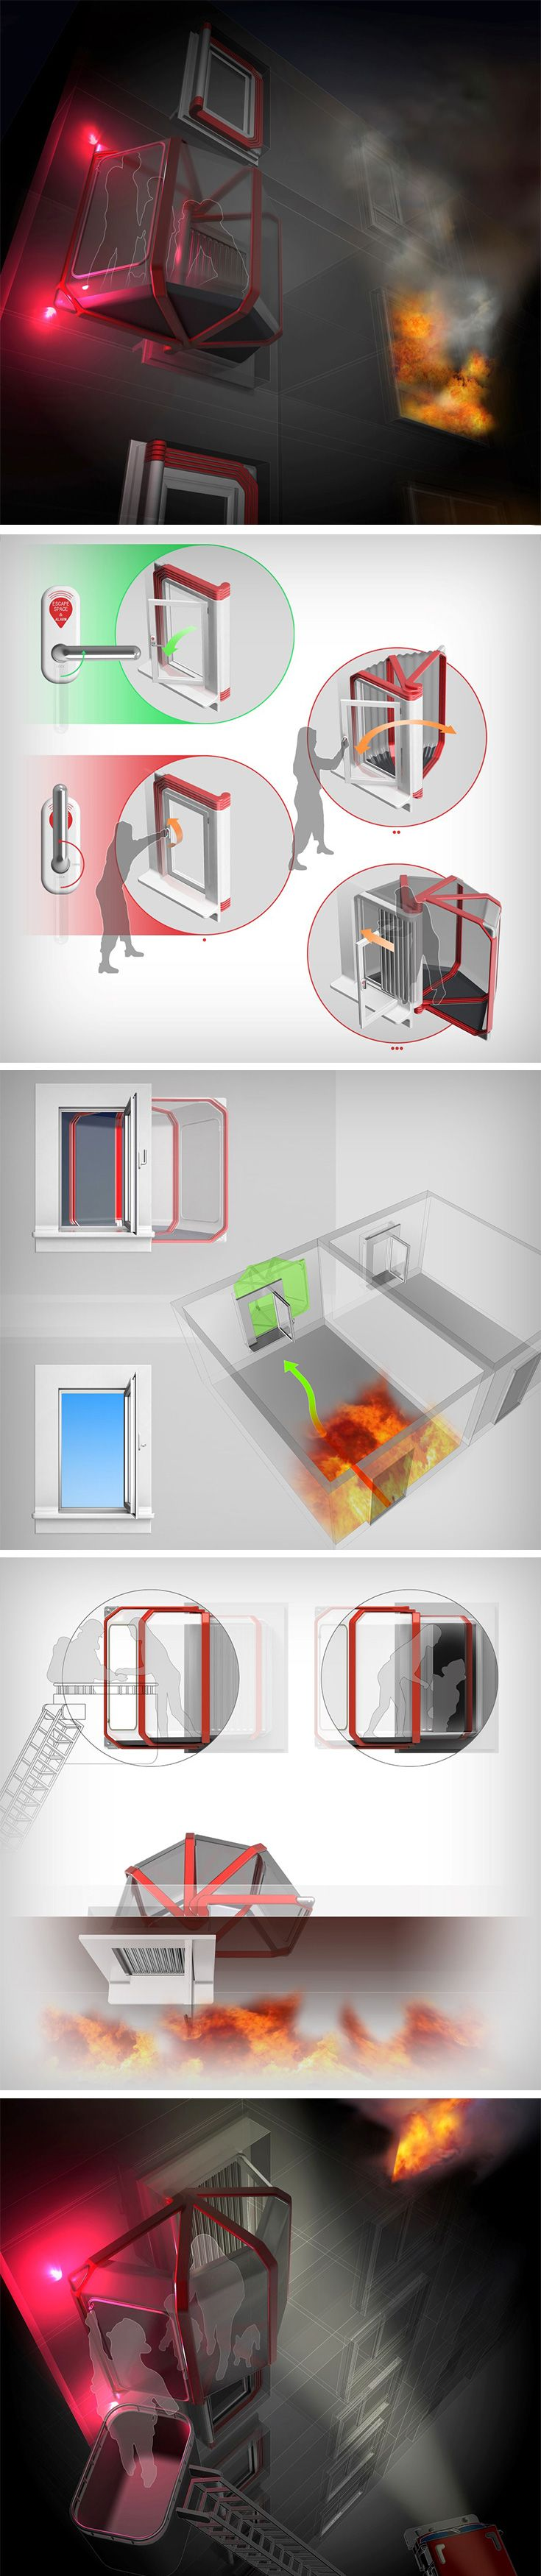 The X-Space should be developed as a mandatory addition to every home. It forms a robust and safe bubble outside the building during a fire. Occupying the space of a window when closed, the X-Space works like an ordinary window when needed, but in the case of an emergency, can be opened out like a bellow into a safe, fire-retardant personal space.